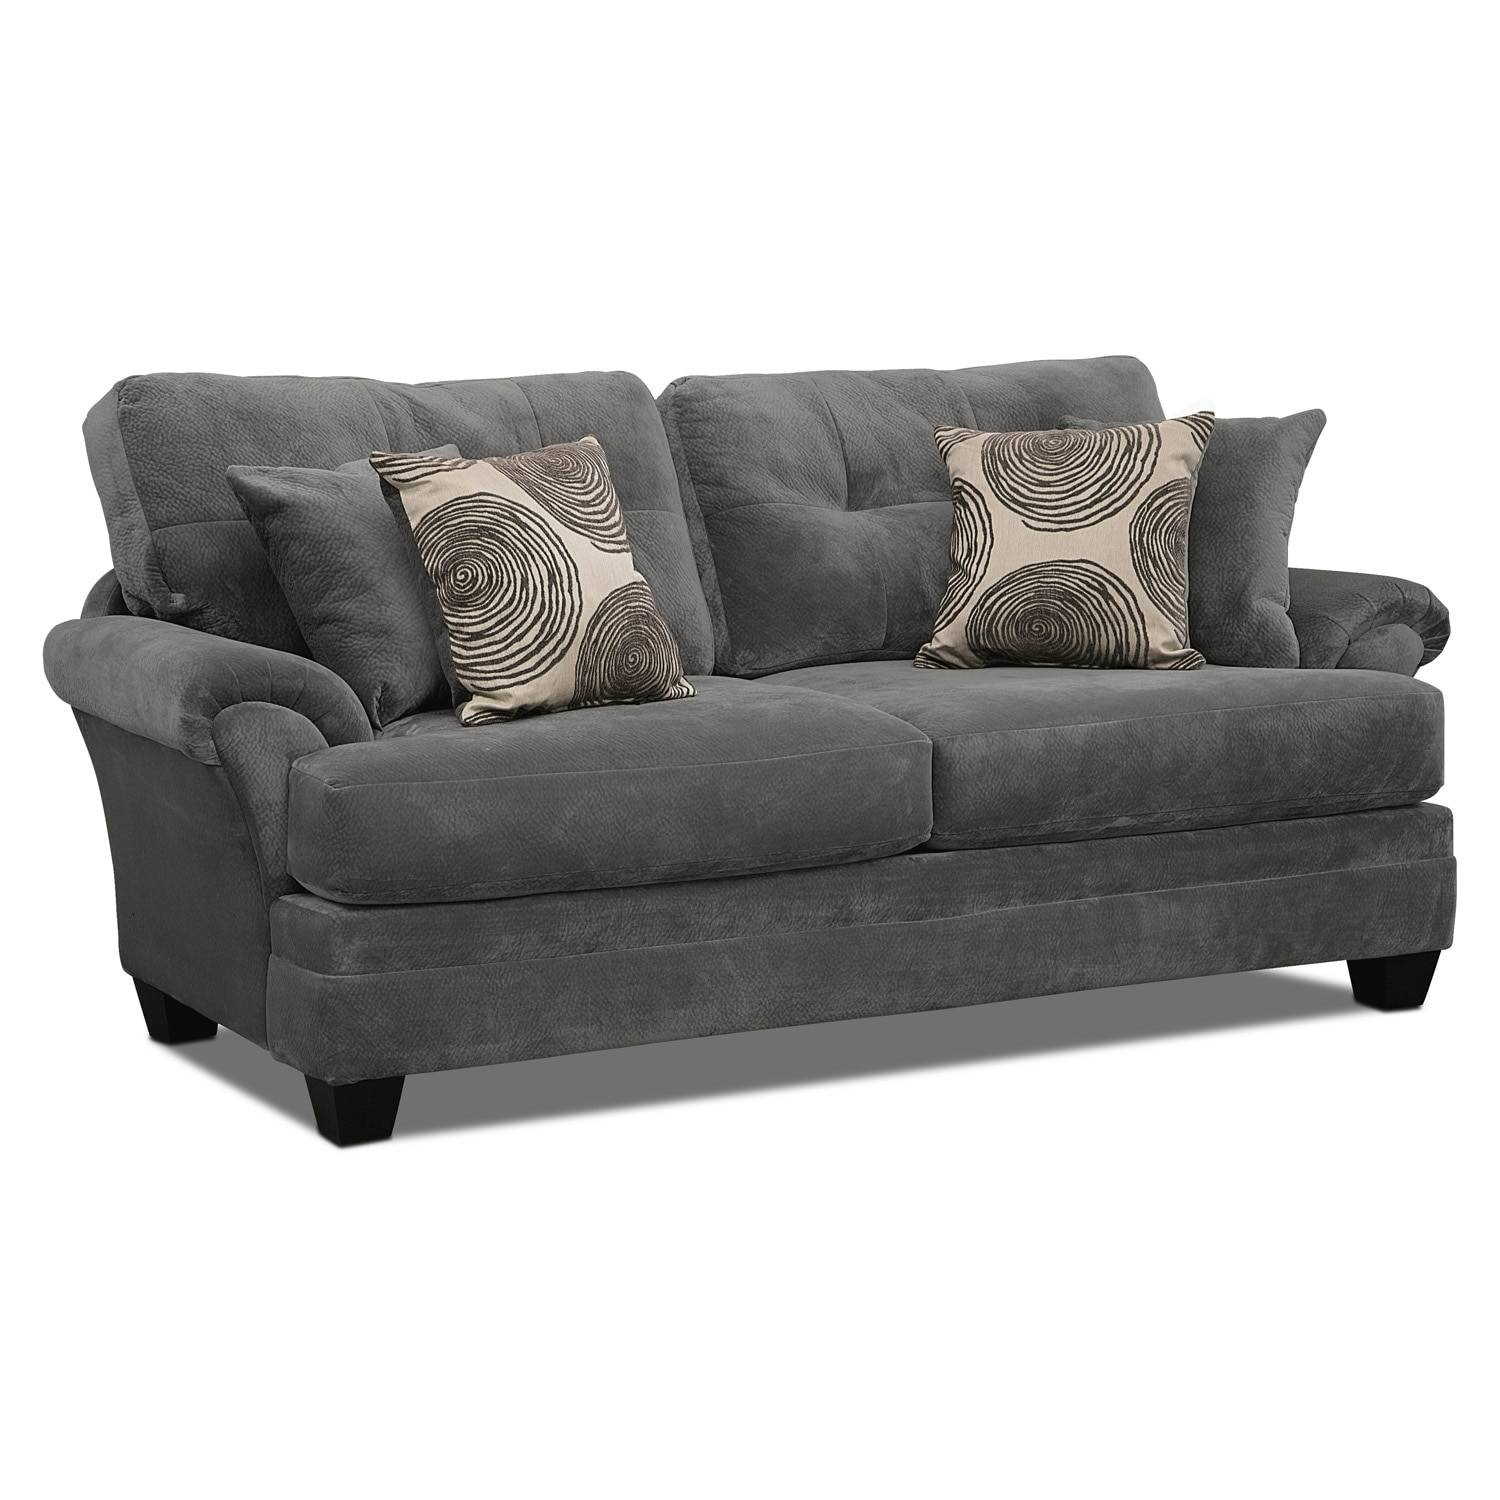 Cordelle Sofa, Loveseat And Swivel Chair Set - Gray | Value City with regard to Swivel Sofa Chairs (Image 7 of 30)